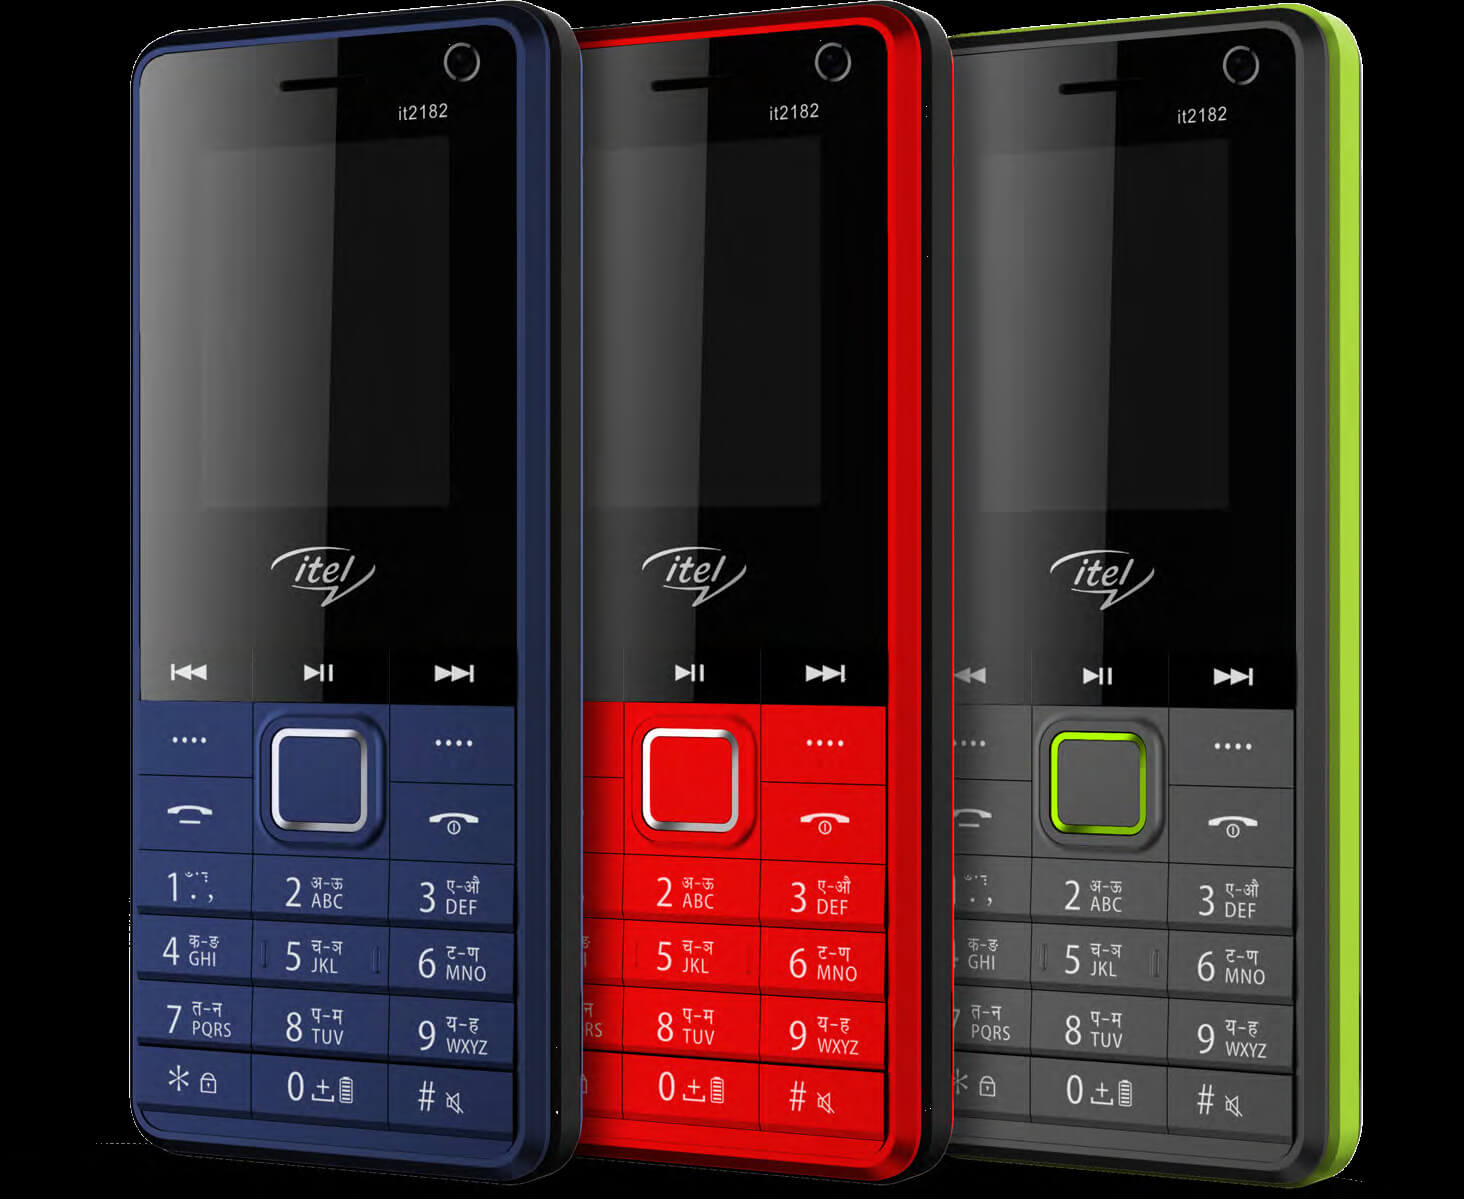 Itel 2182 dual camera phone, wireless FM launched @ Rs. 899 in India